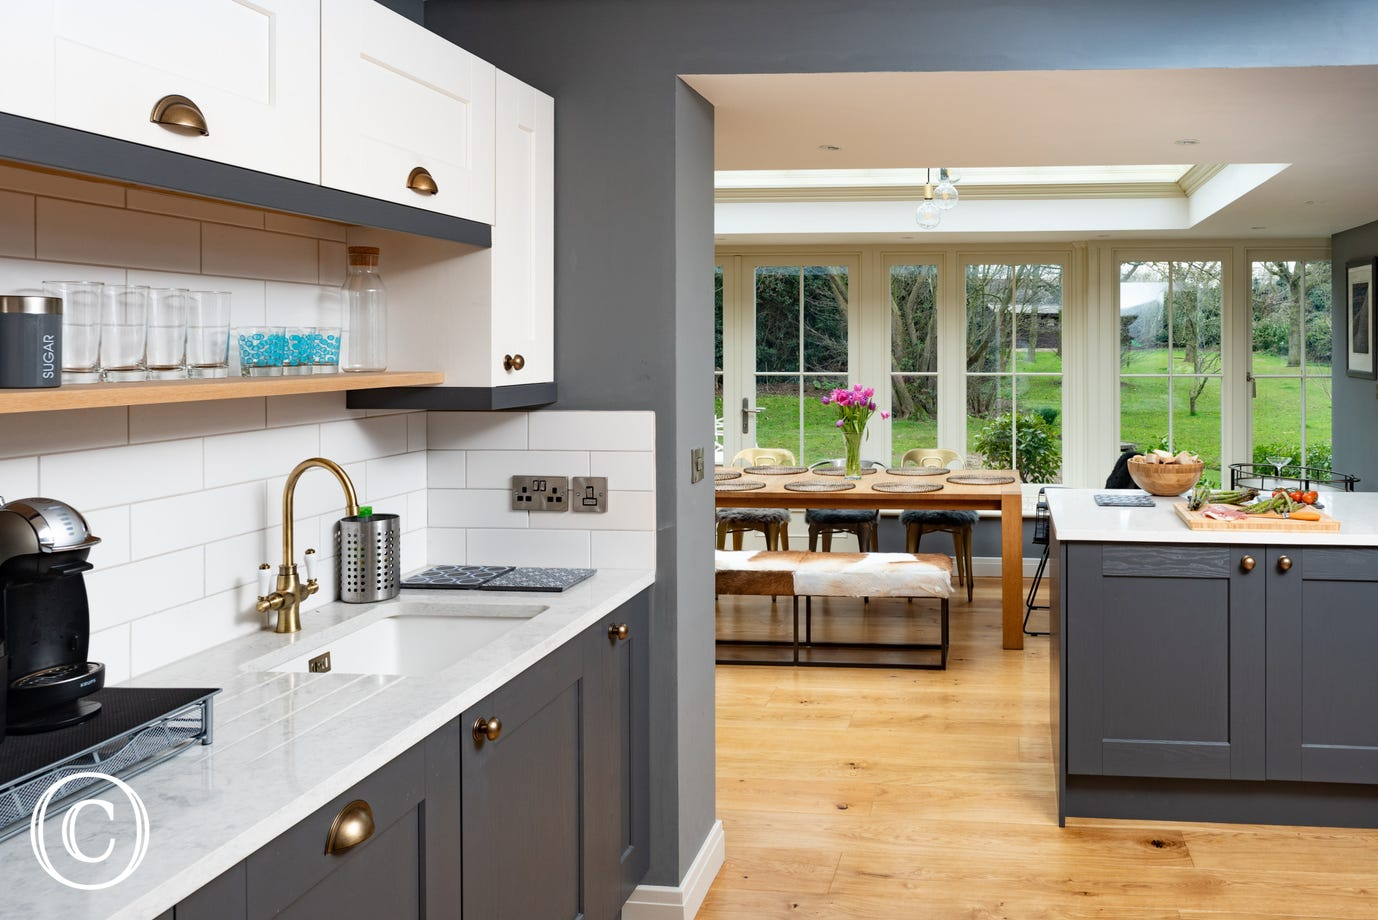 Open plan kitchen & conservatory